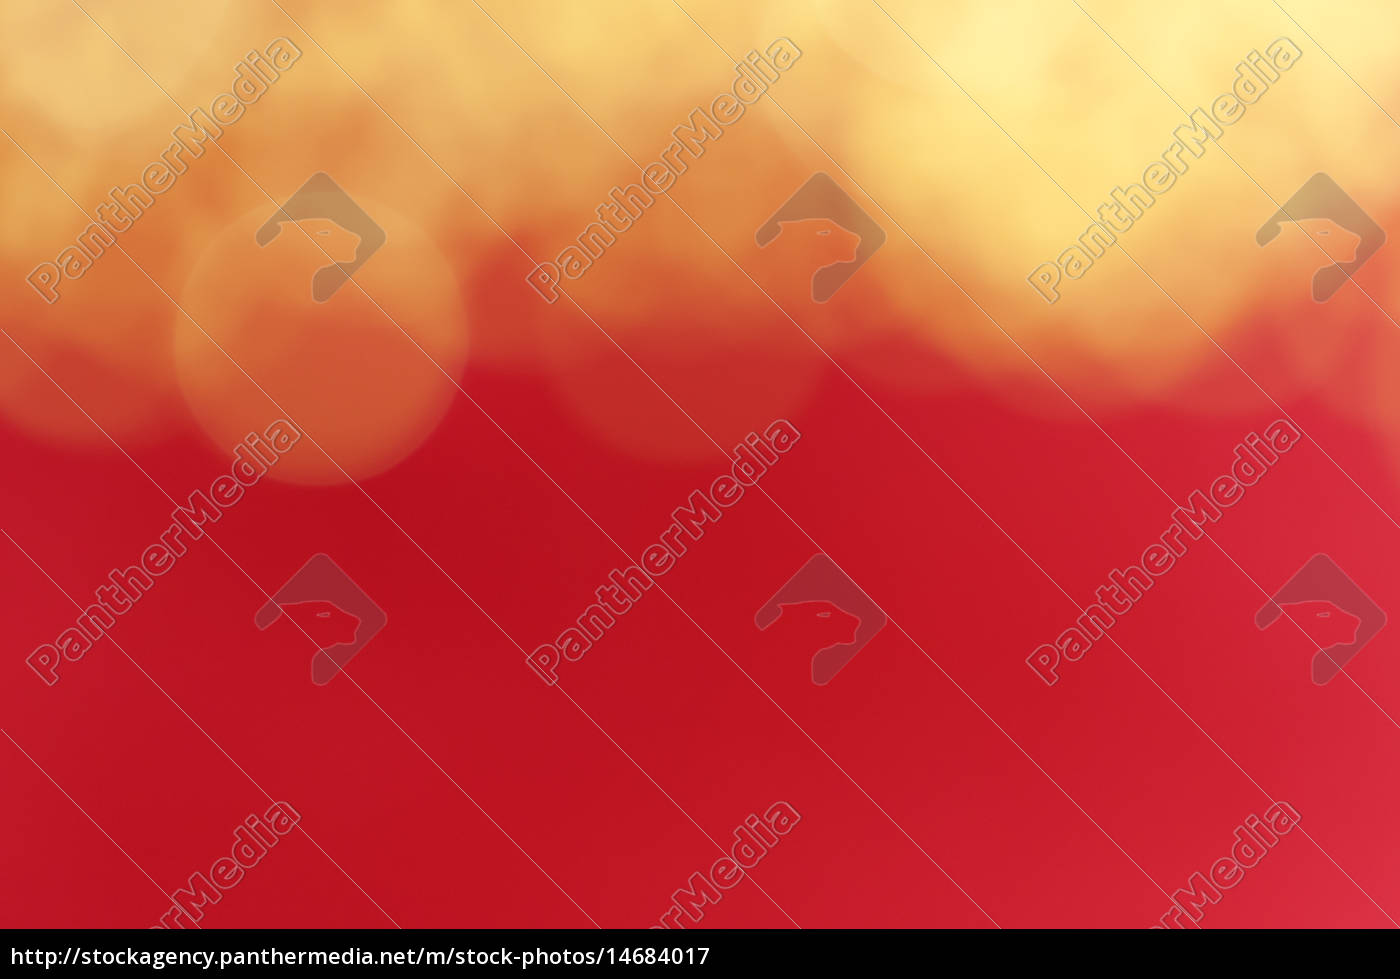 abstract, blurred, background - 14684017